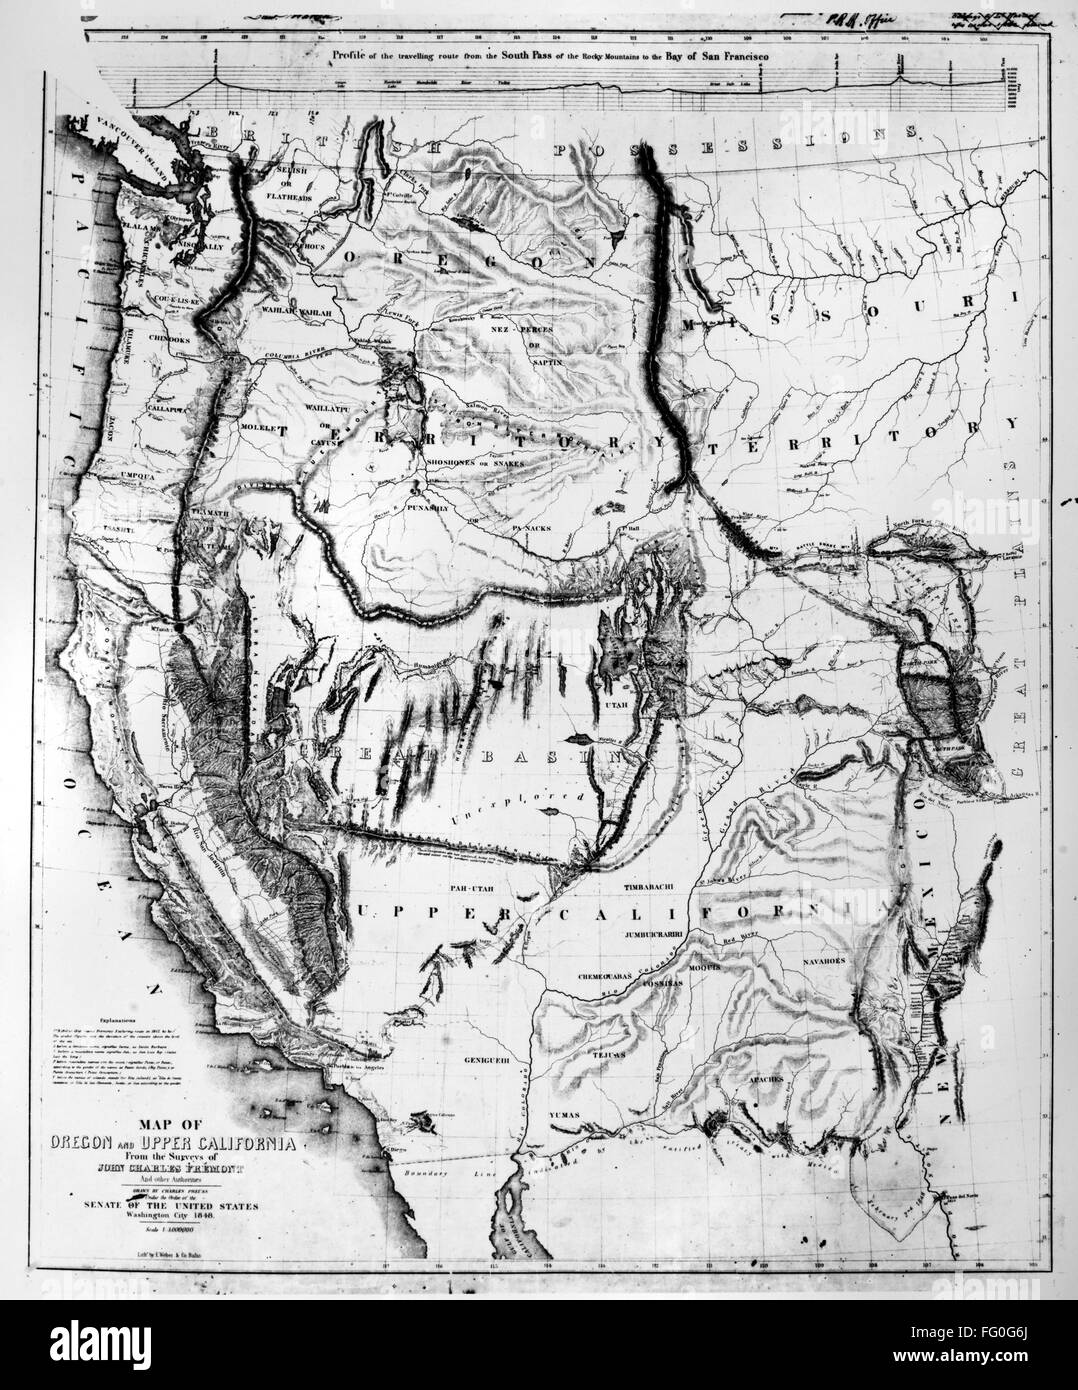 MAP: WESTERN U.S., 1848. /nMap of the western United States, 1848 ...